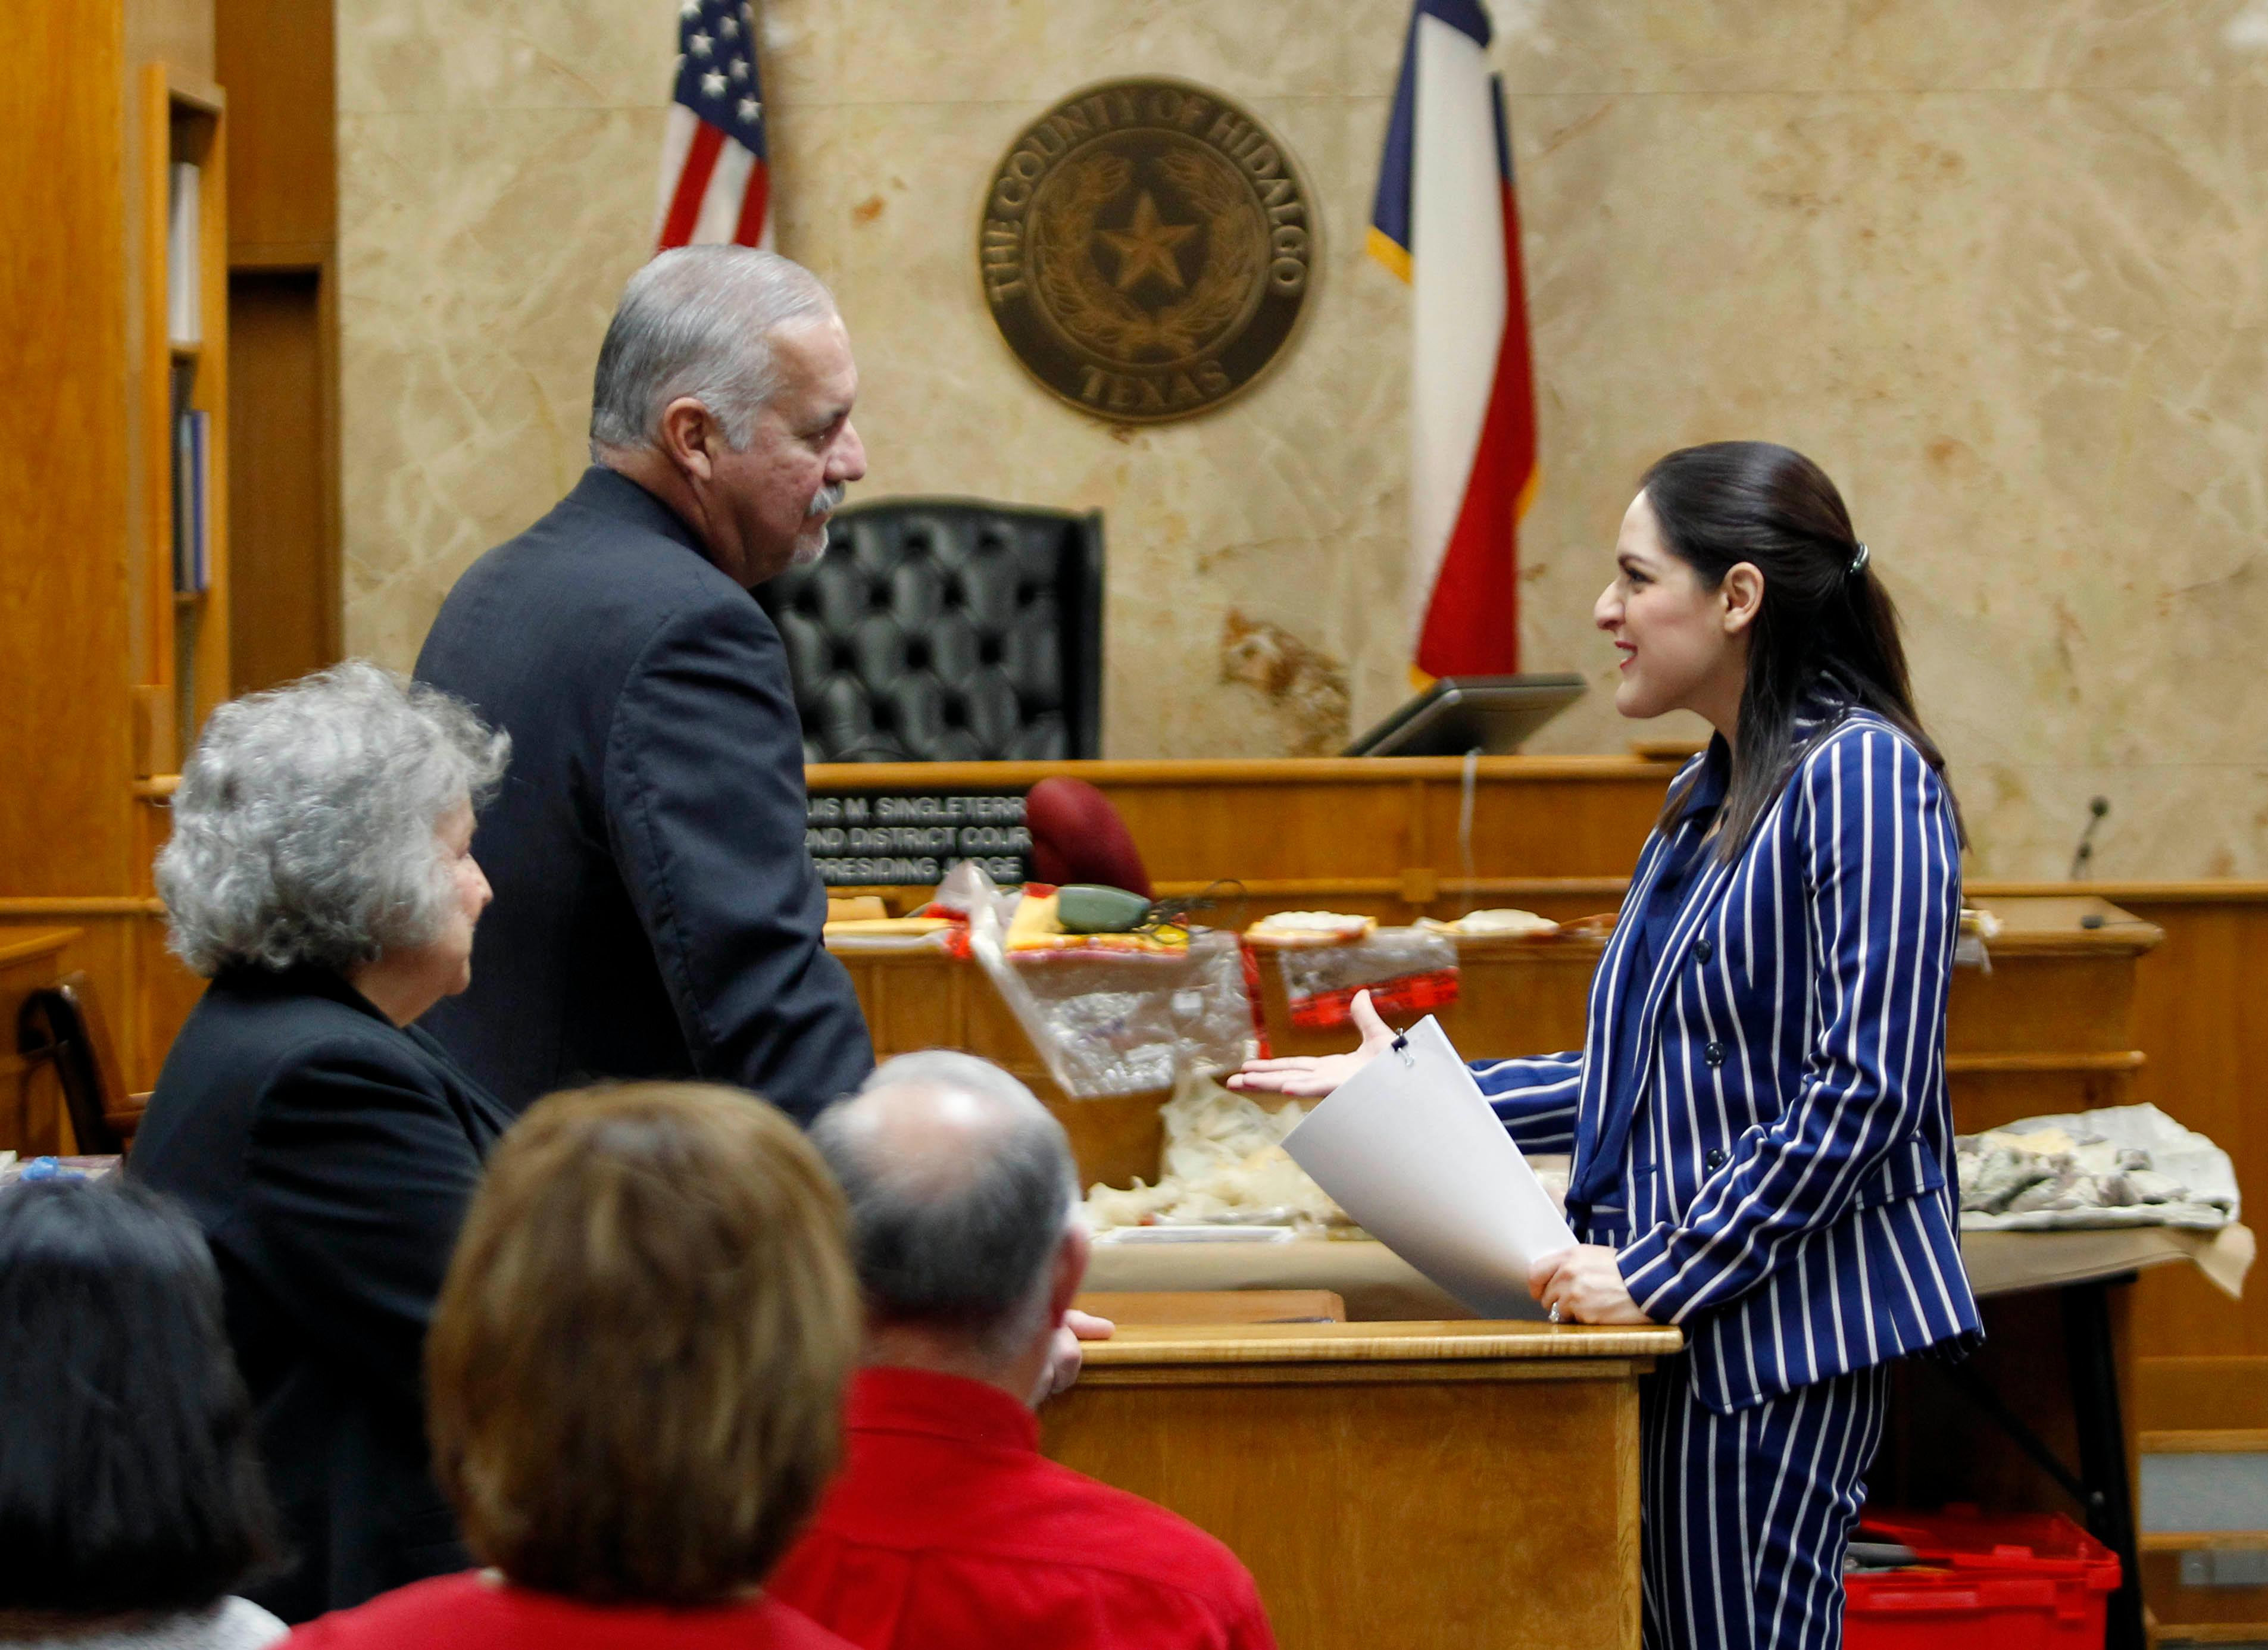 Defense attorney A. Ricardo Flores talks with Hidalgo County Assistant District Attorney Kristine Ramos before the start of the fifth day of John Bernard Feit's trial for the 1960 murder of Irene Garza Wednesday, December 6, 2017, at the Hidalgo County Courthouse in Edinburg.                 (Nathan Lambrecht/The Monitor/Pool)